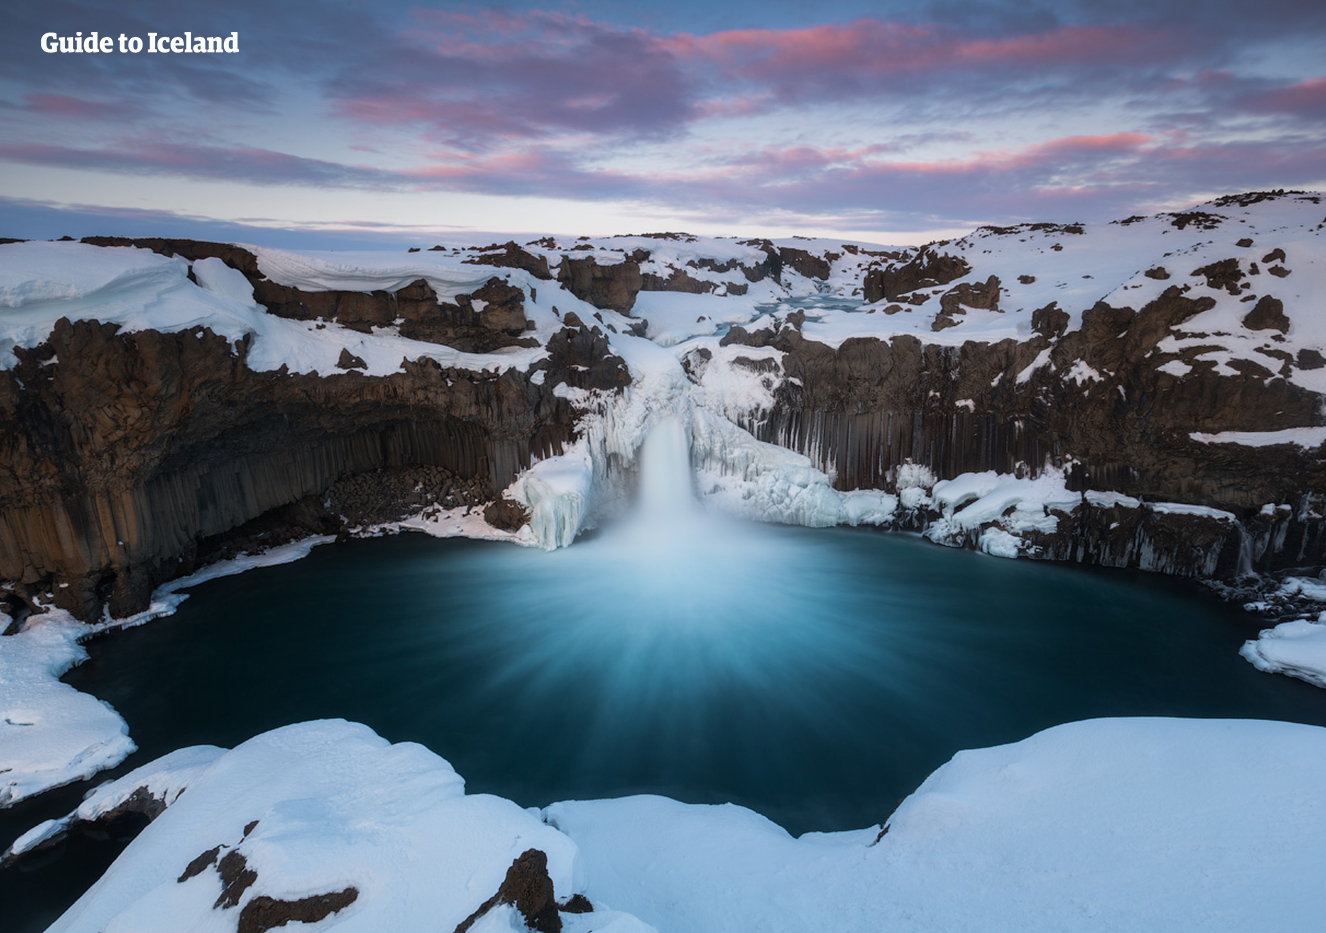 Aldeyarfoss is a waterfall located in the north of Iceland.